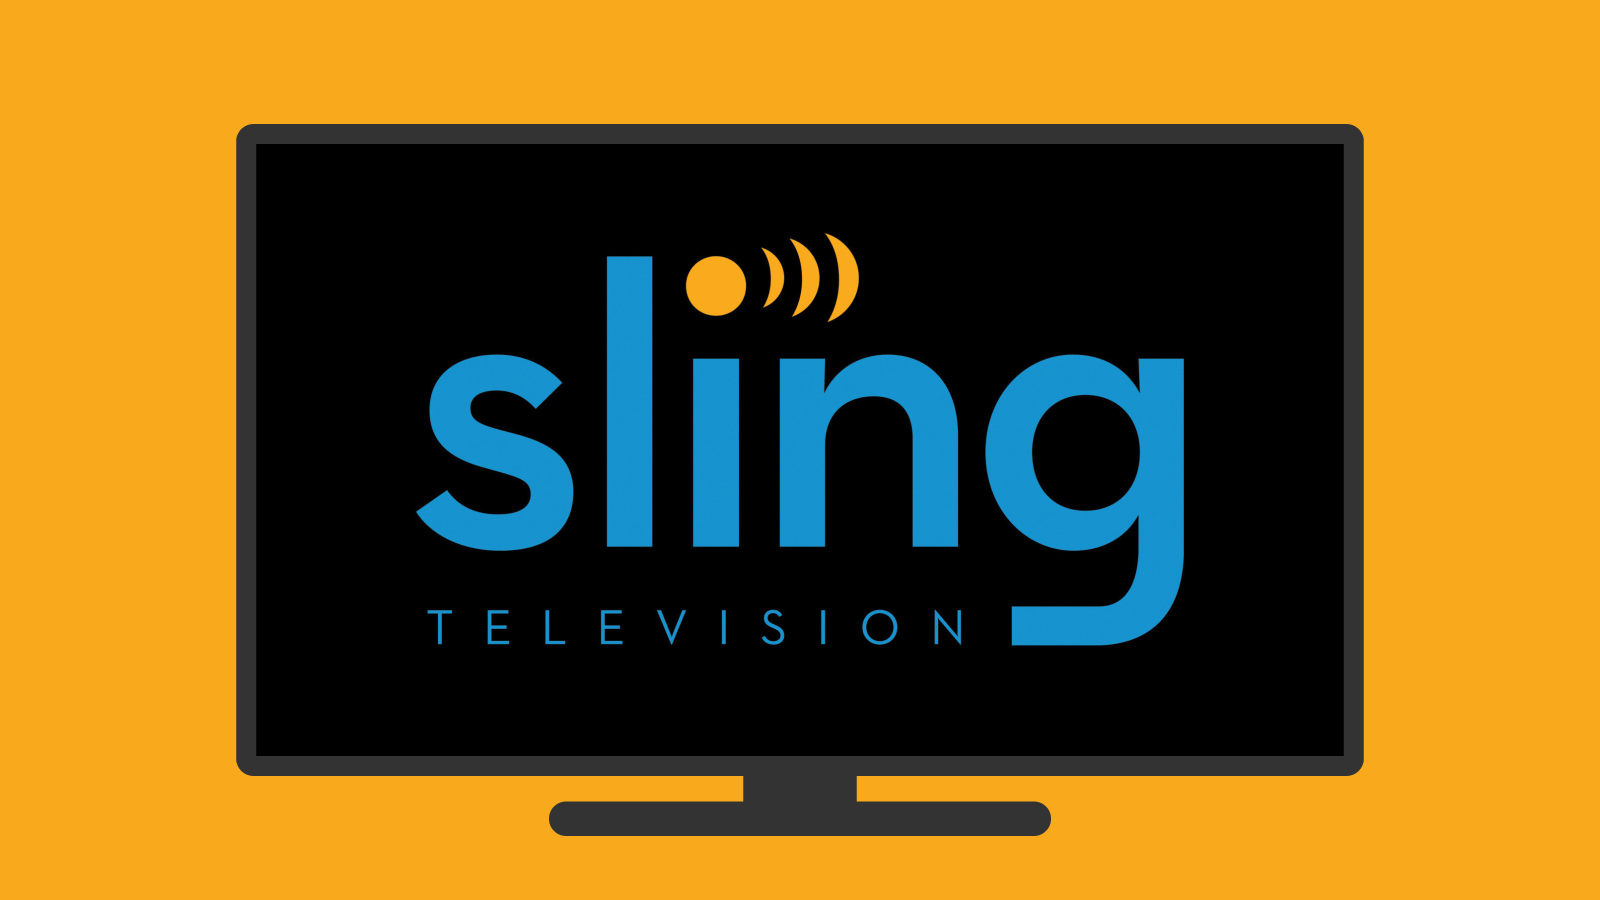 Sling TV is giving away free OTA antennas to those that pre-pay for service